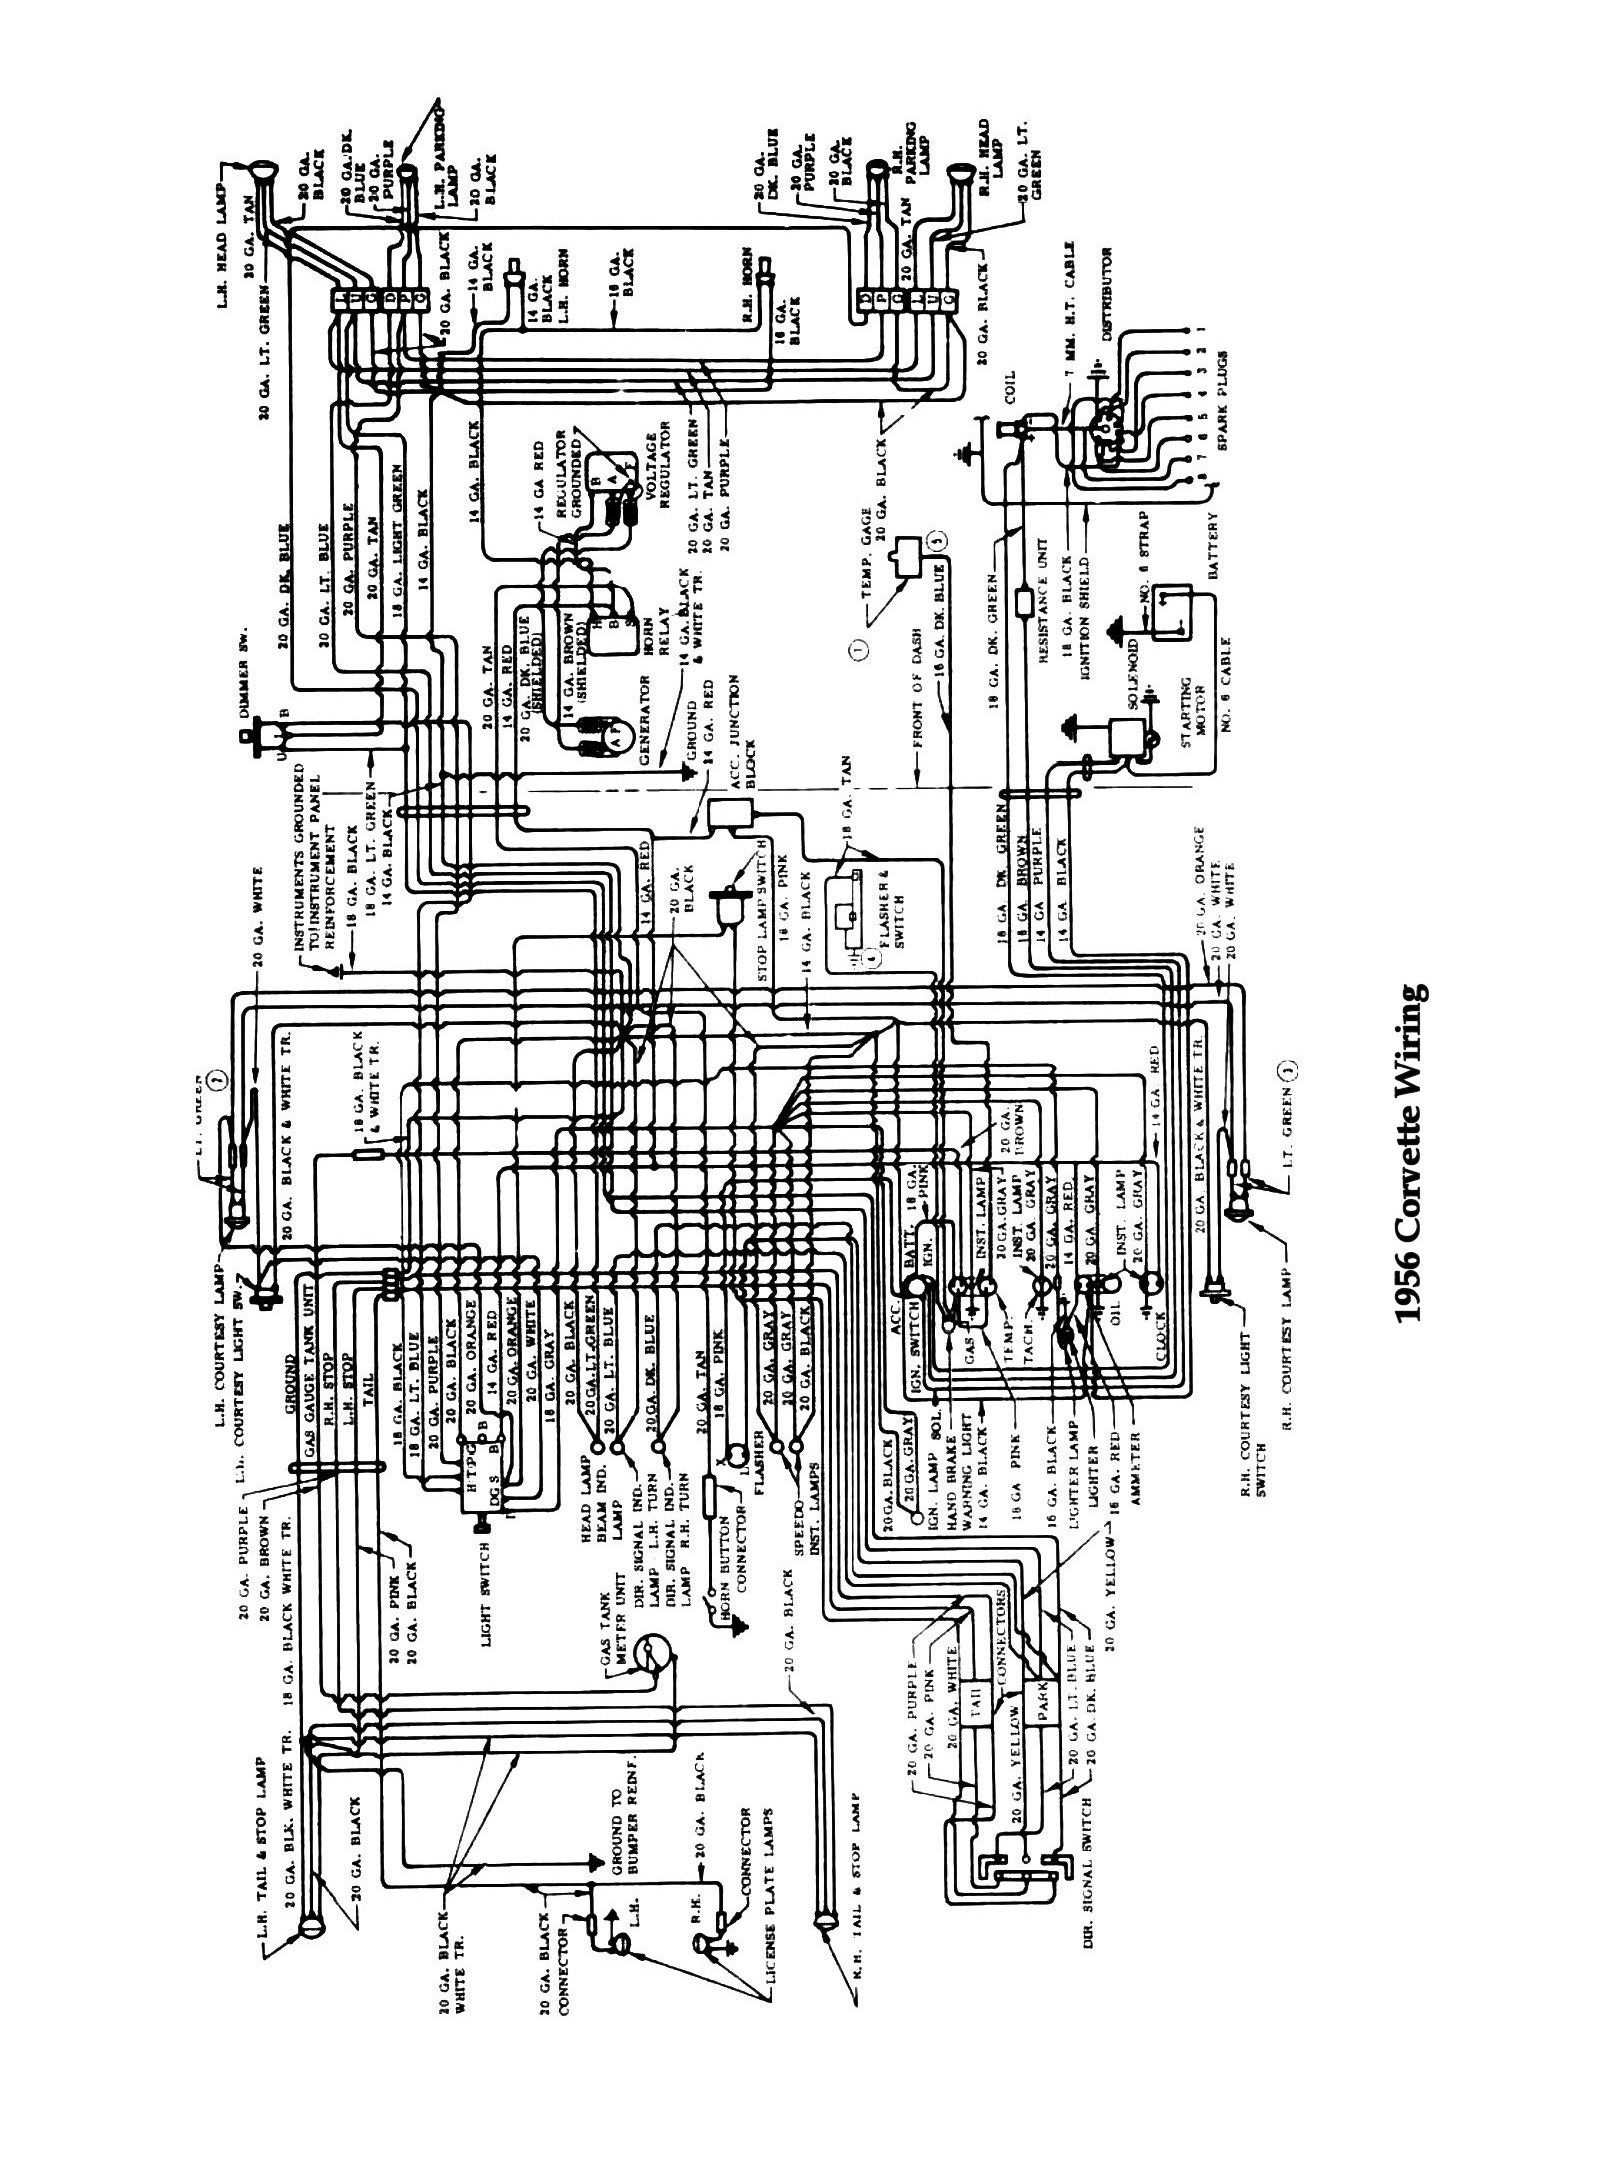 1954 Corvette Wiring Diagram Reveolution Of 56 Ford 1956 Tractor Free Chevy Diagrams Rh Oldcarmanualproject Com 1981 F100 1964 Impala 283